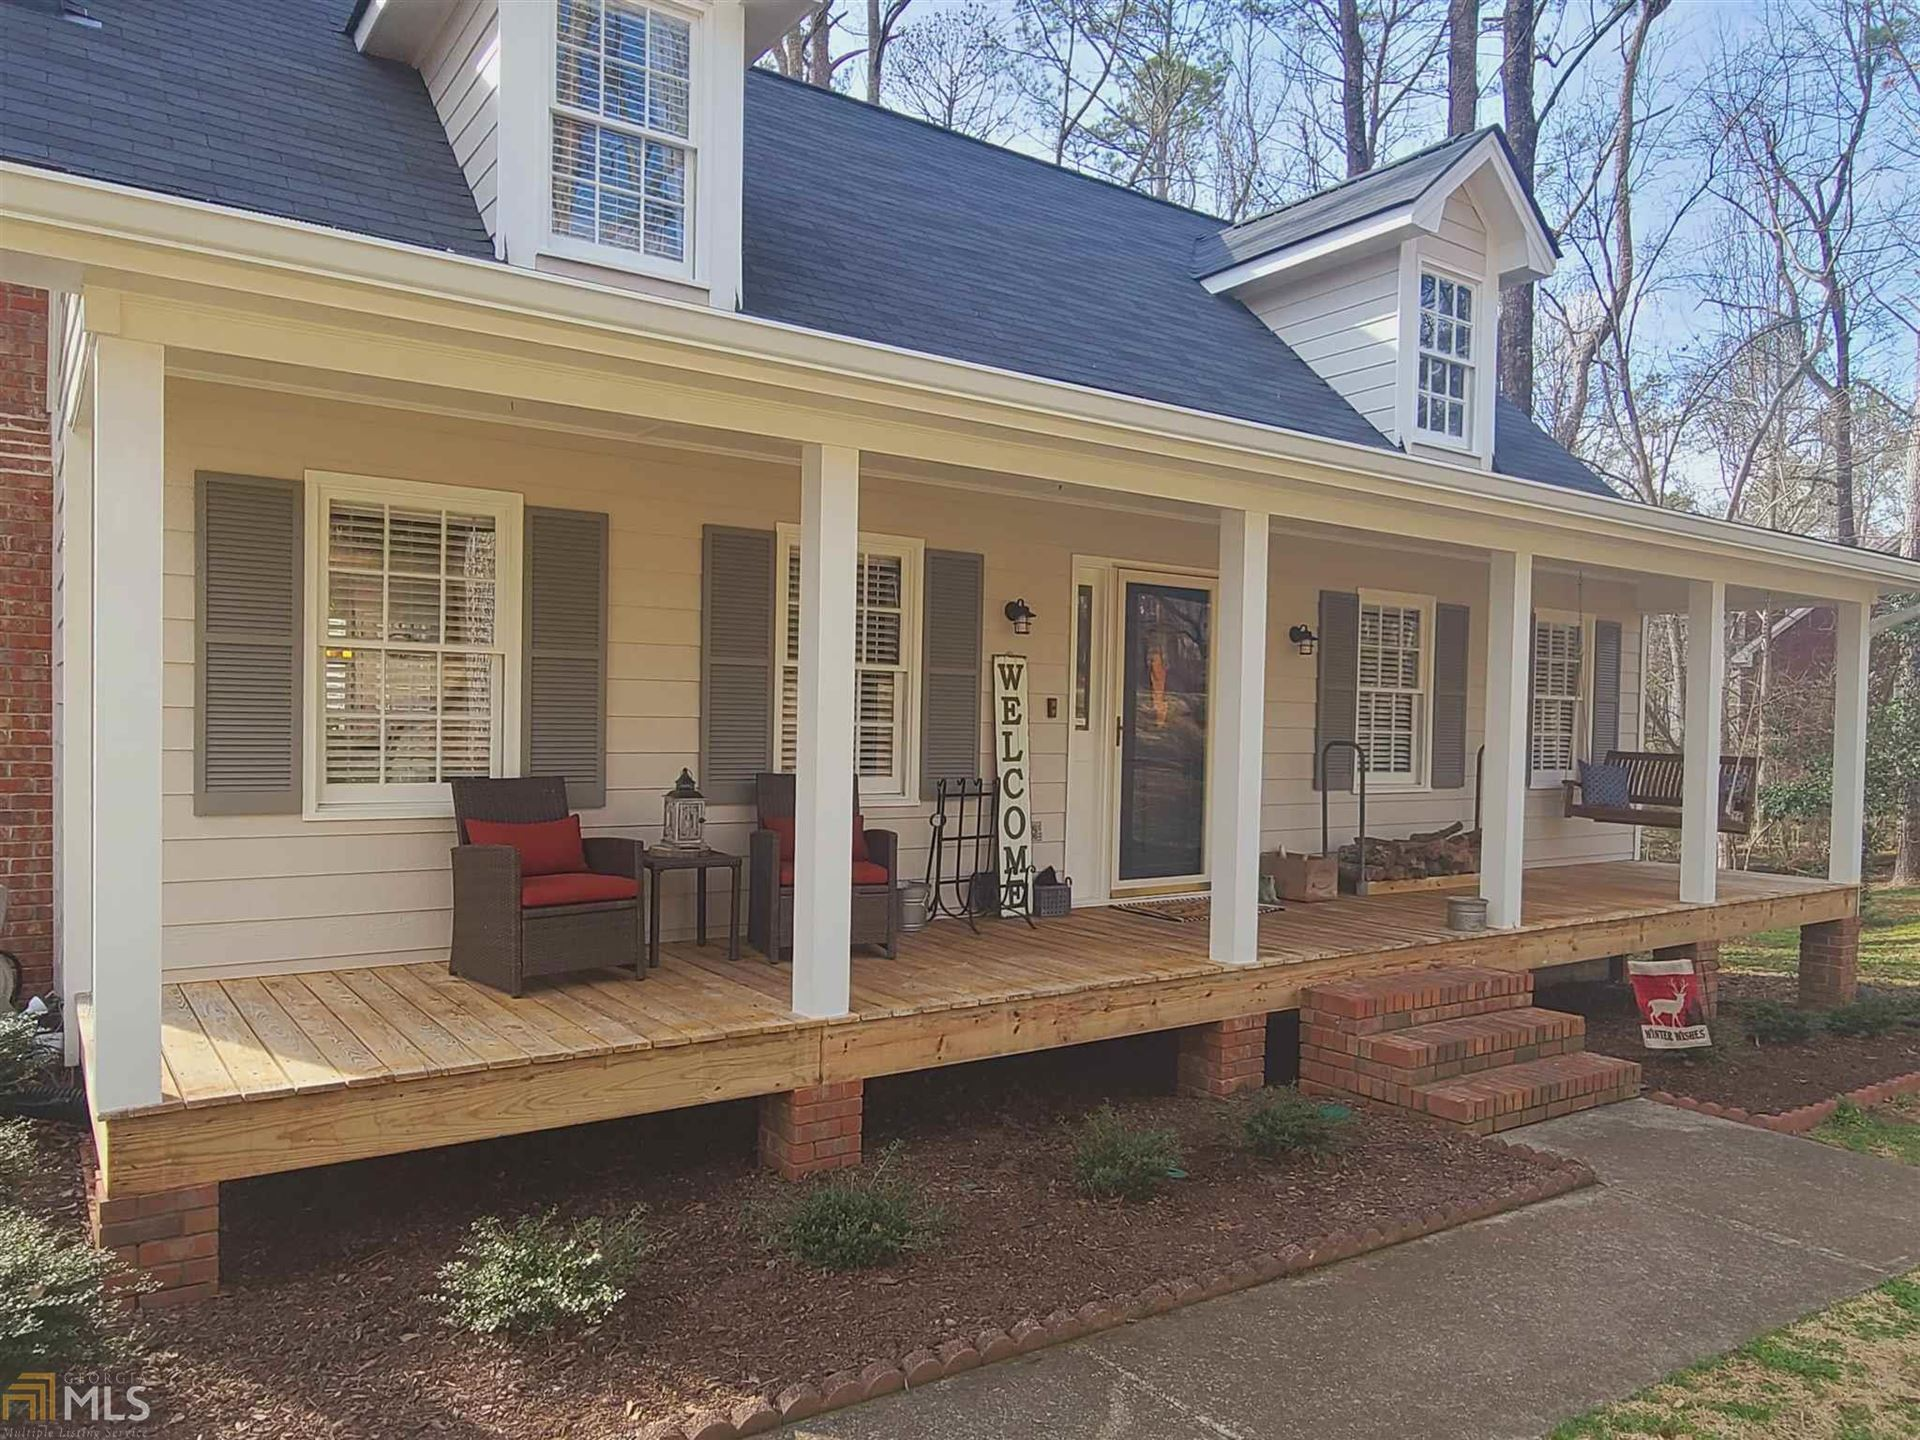 Photo of 3070 Sandy Creek Ct, Loganville, GA 30052 (MLS # 8935804)